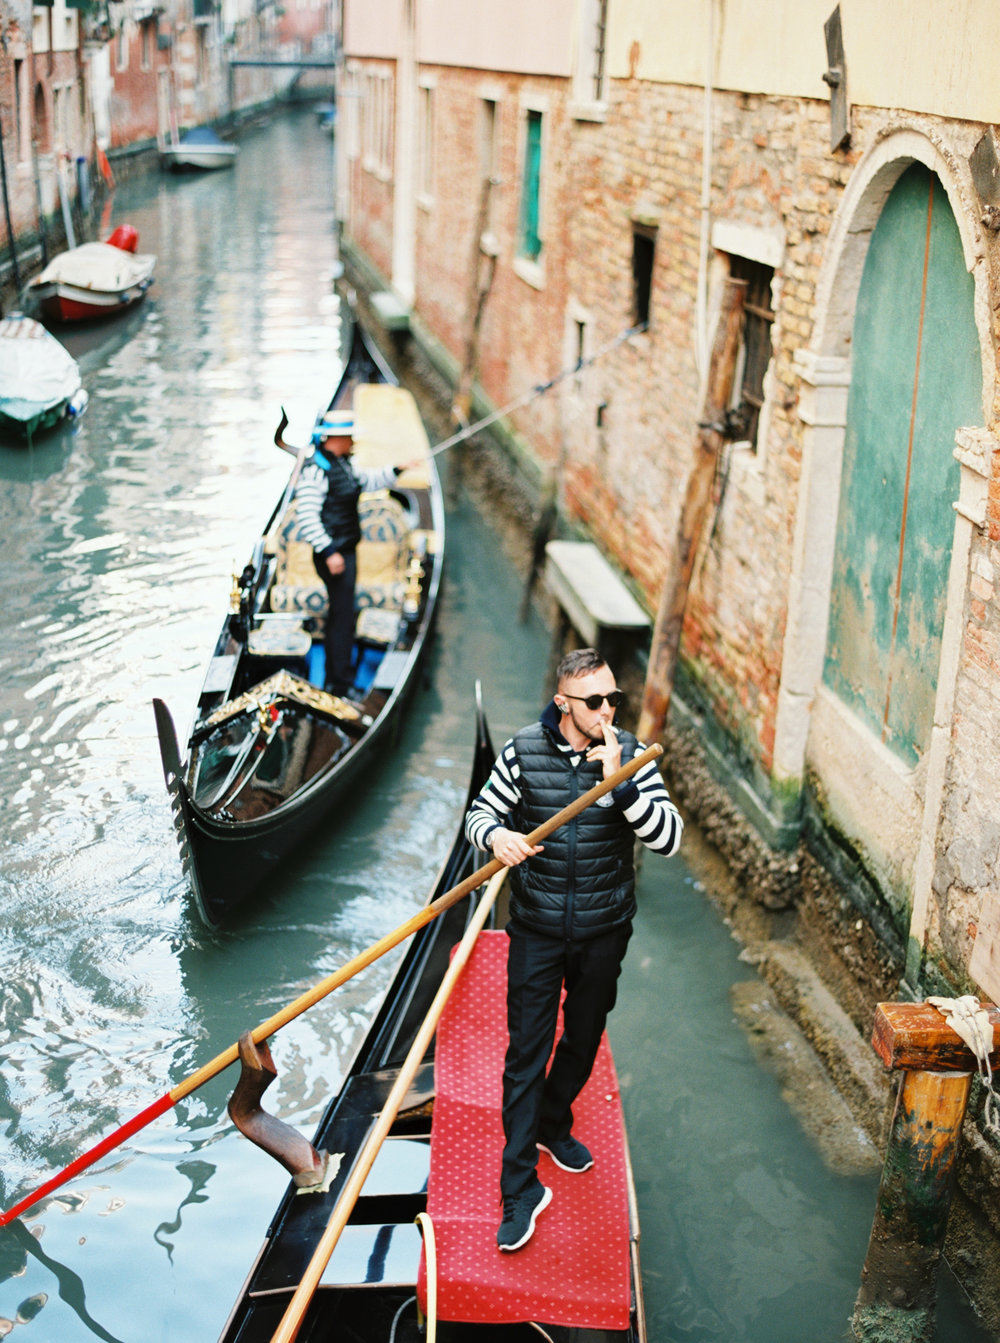 Classic Amalfi Coast and Venice Gondolas - see more now on Cottage Hill.